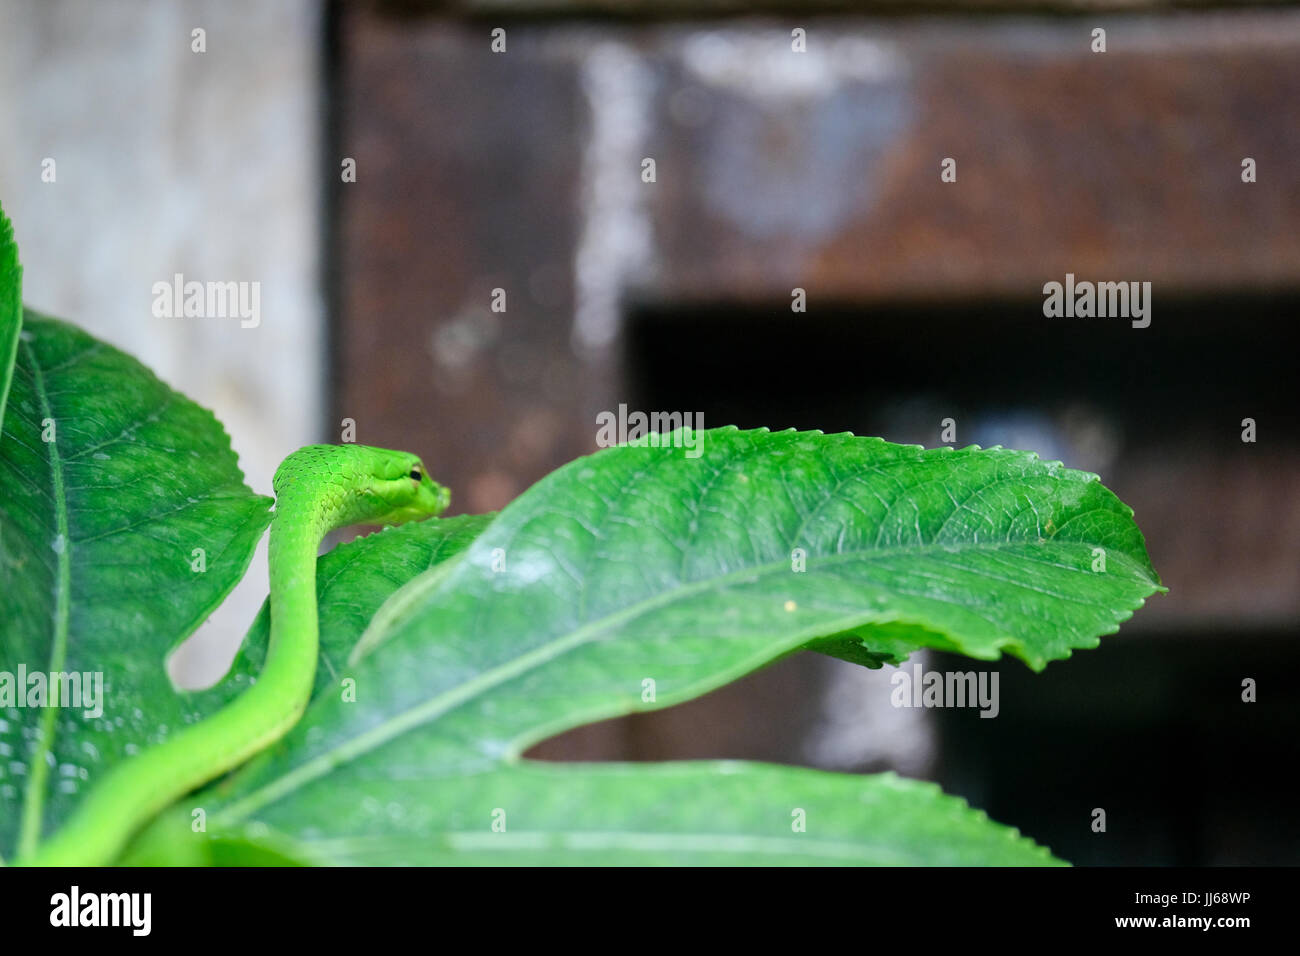 FUENGIROLA, ANDALUCIA/SPAIN - JULY 4 : Green Mamba (Dendroaspis angusticeps) at the Bioparc Fuengirola Costa del - Stock Image